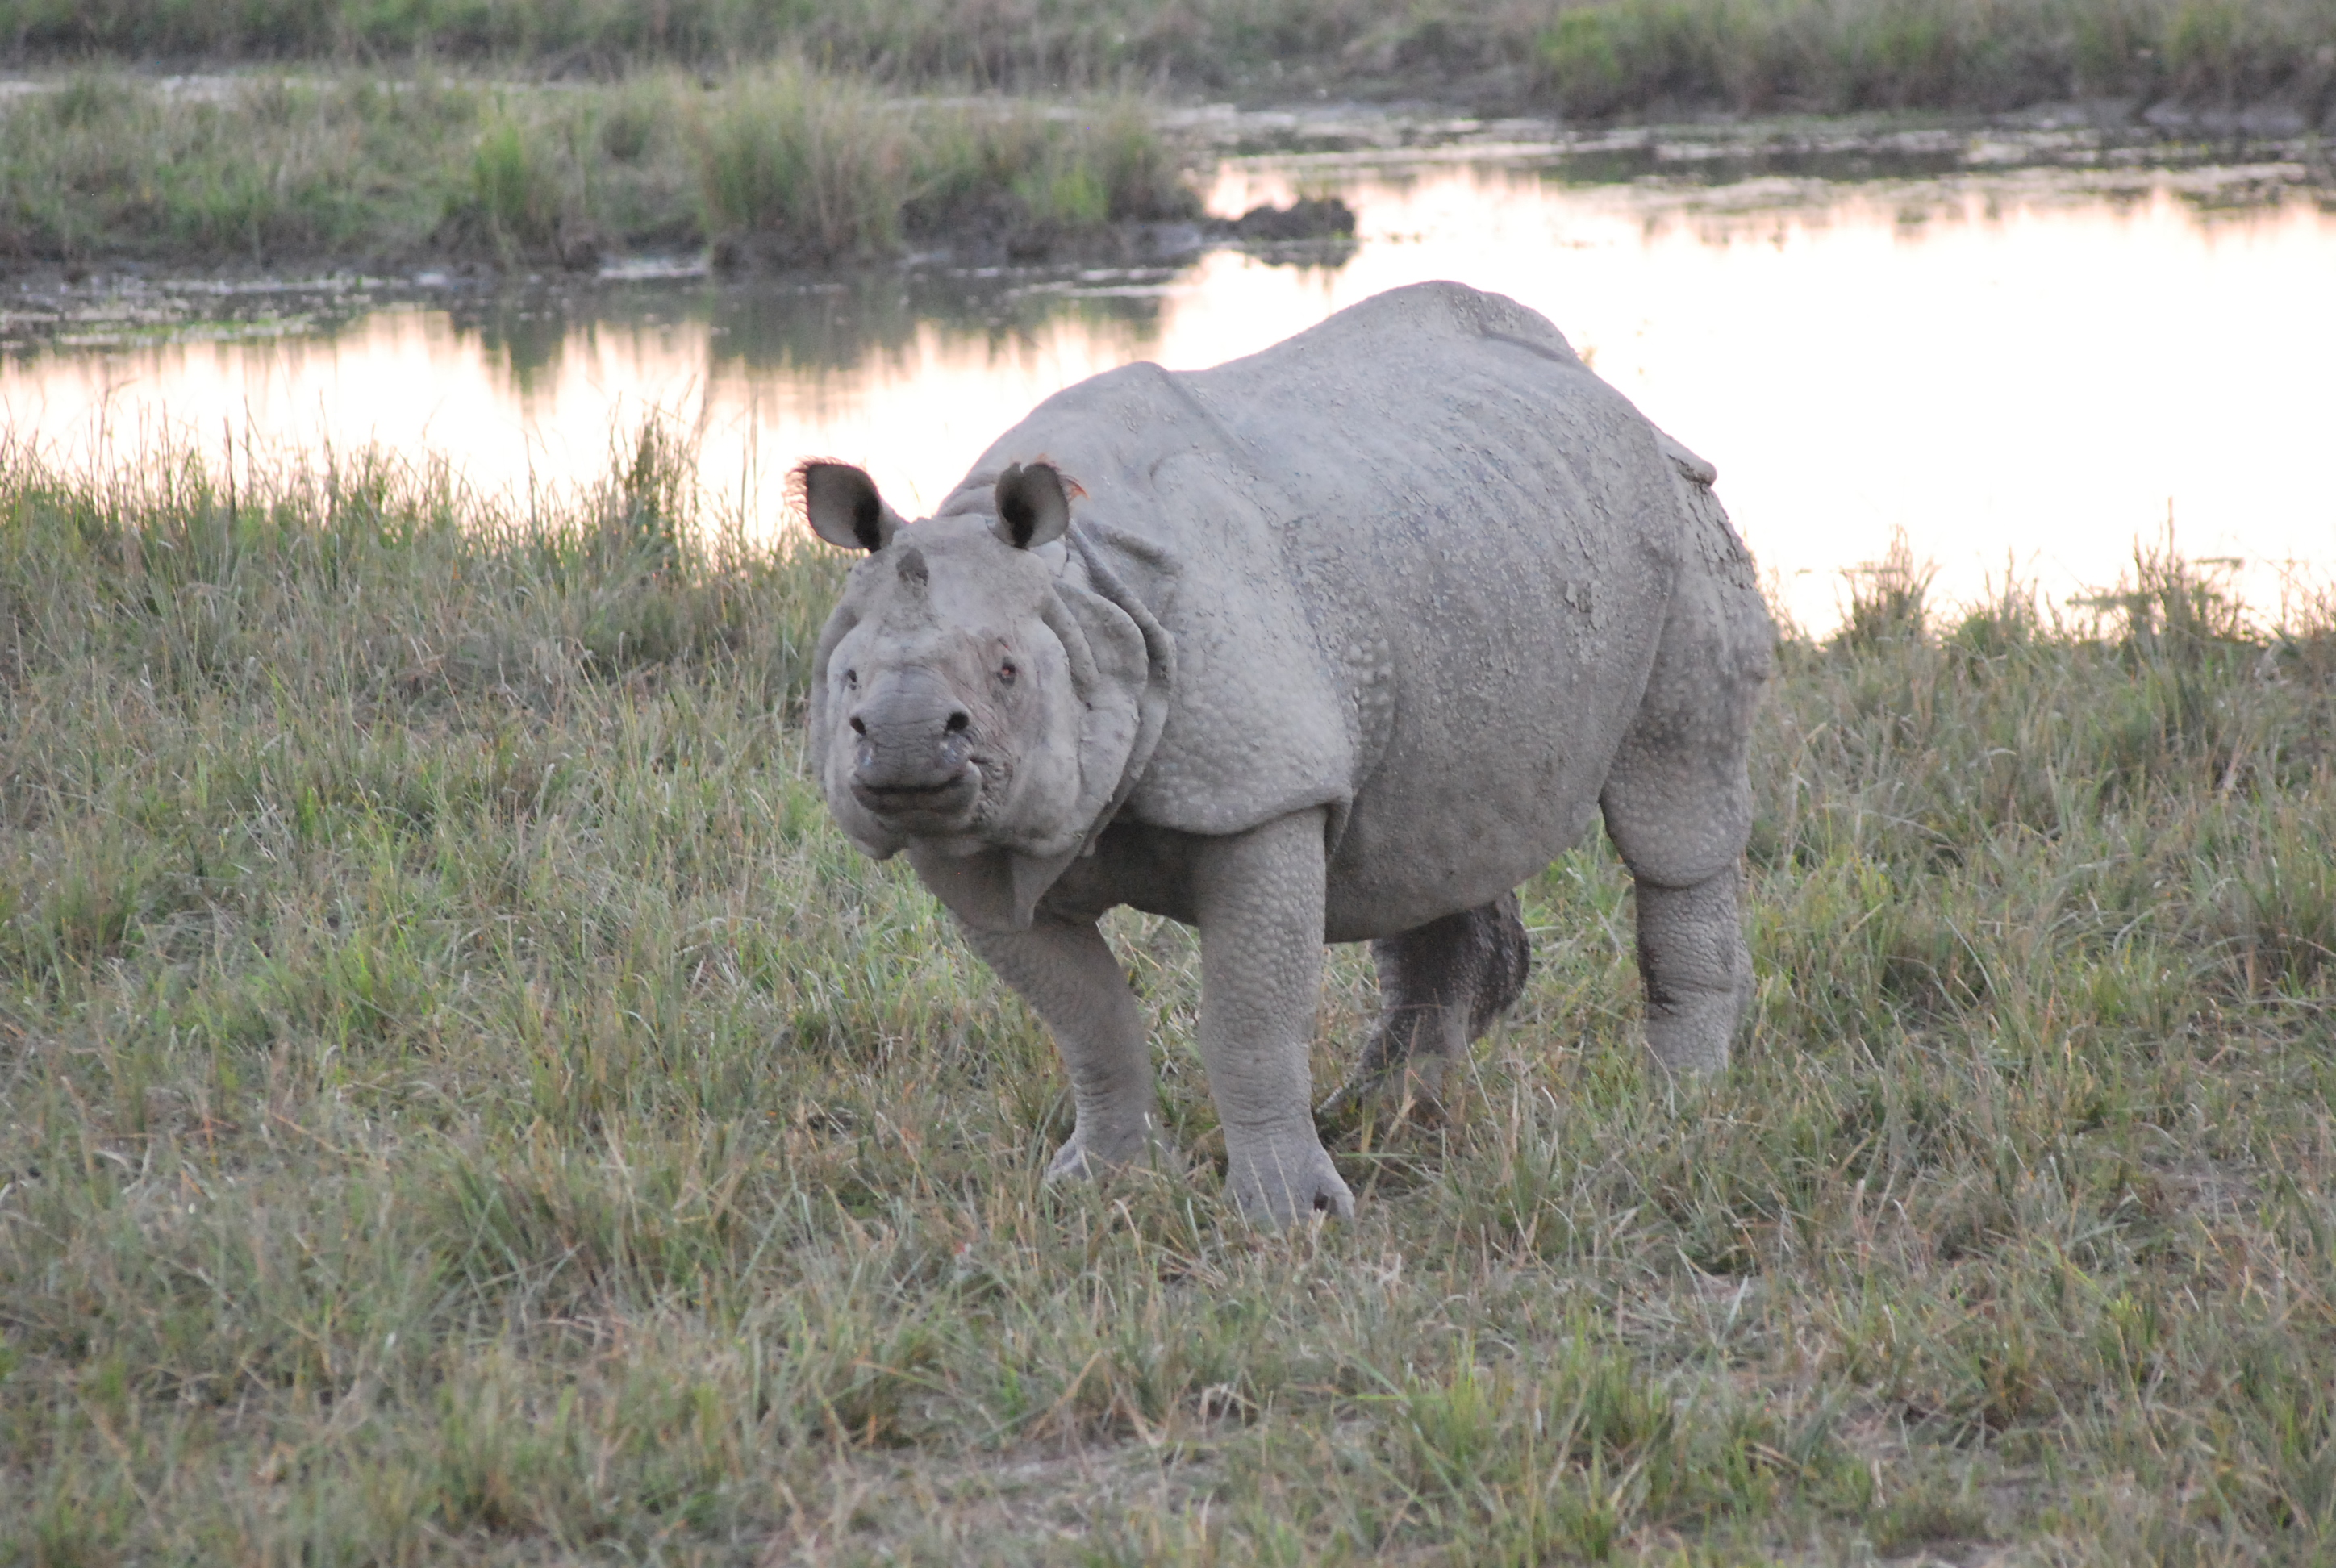 The greater one-horned rhinoceros or The Indian rhinoceros at Pobitora wildlife sanctuary